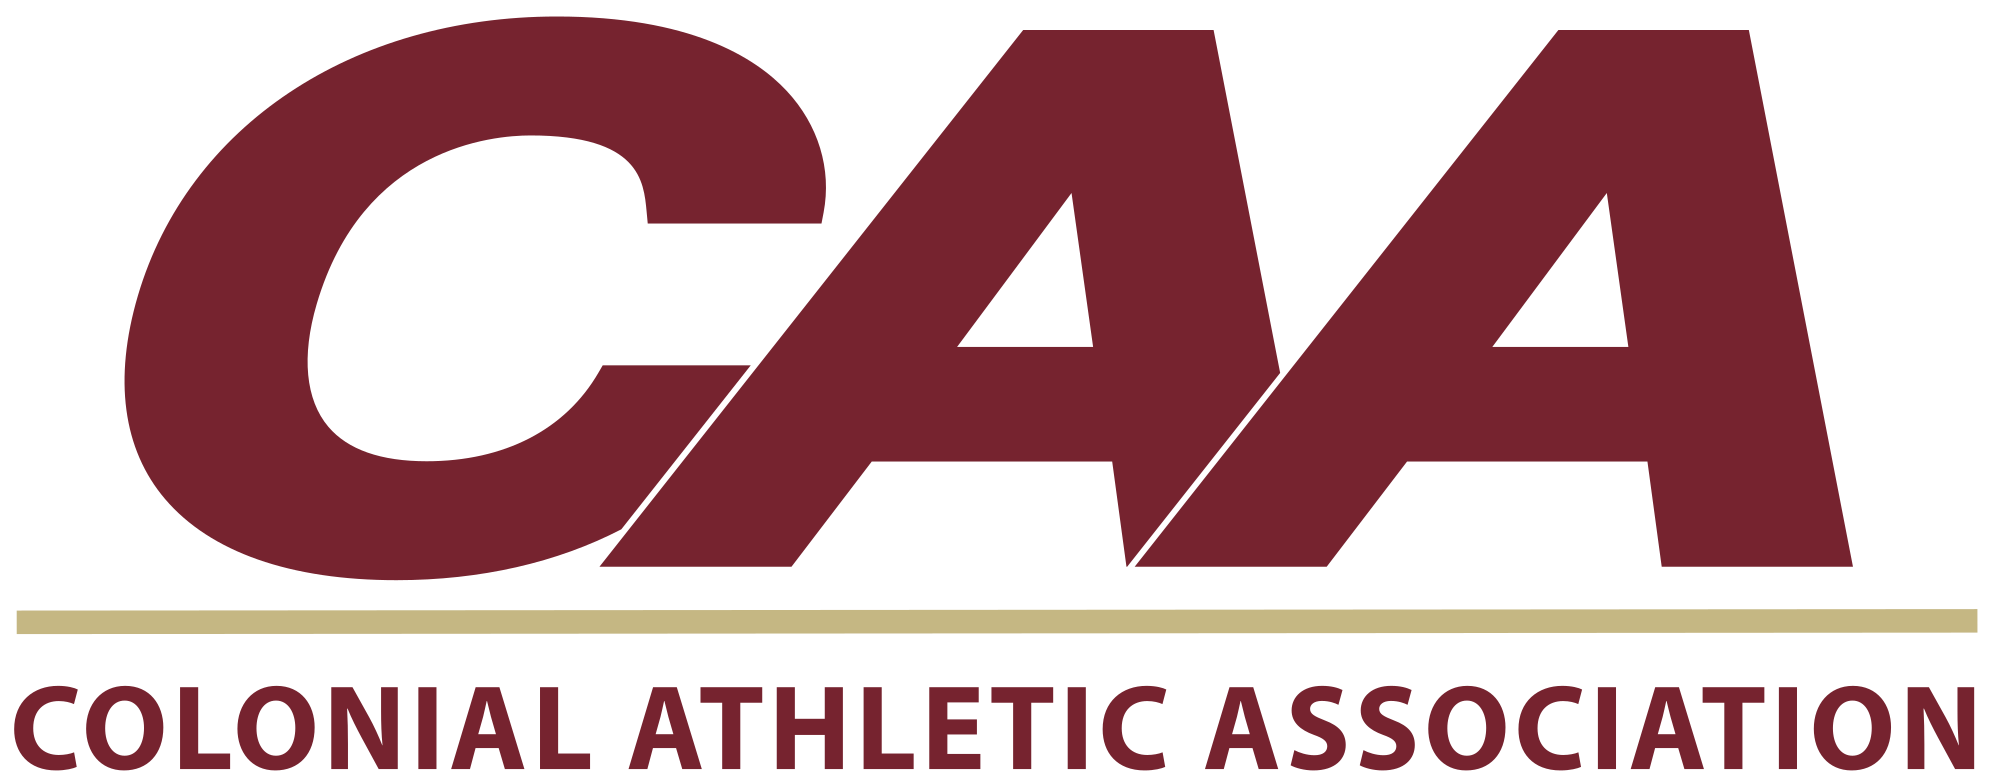 File:CAA logo in College of Charleston colors.svg.